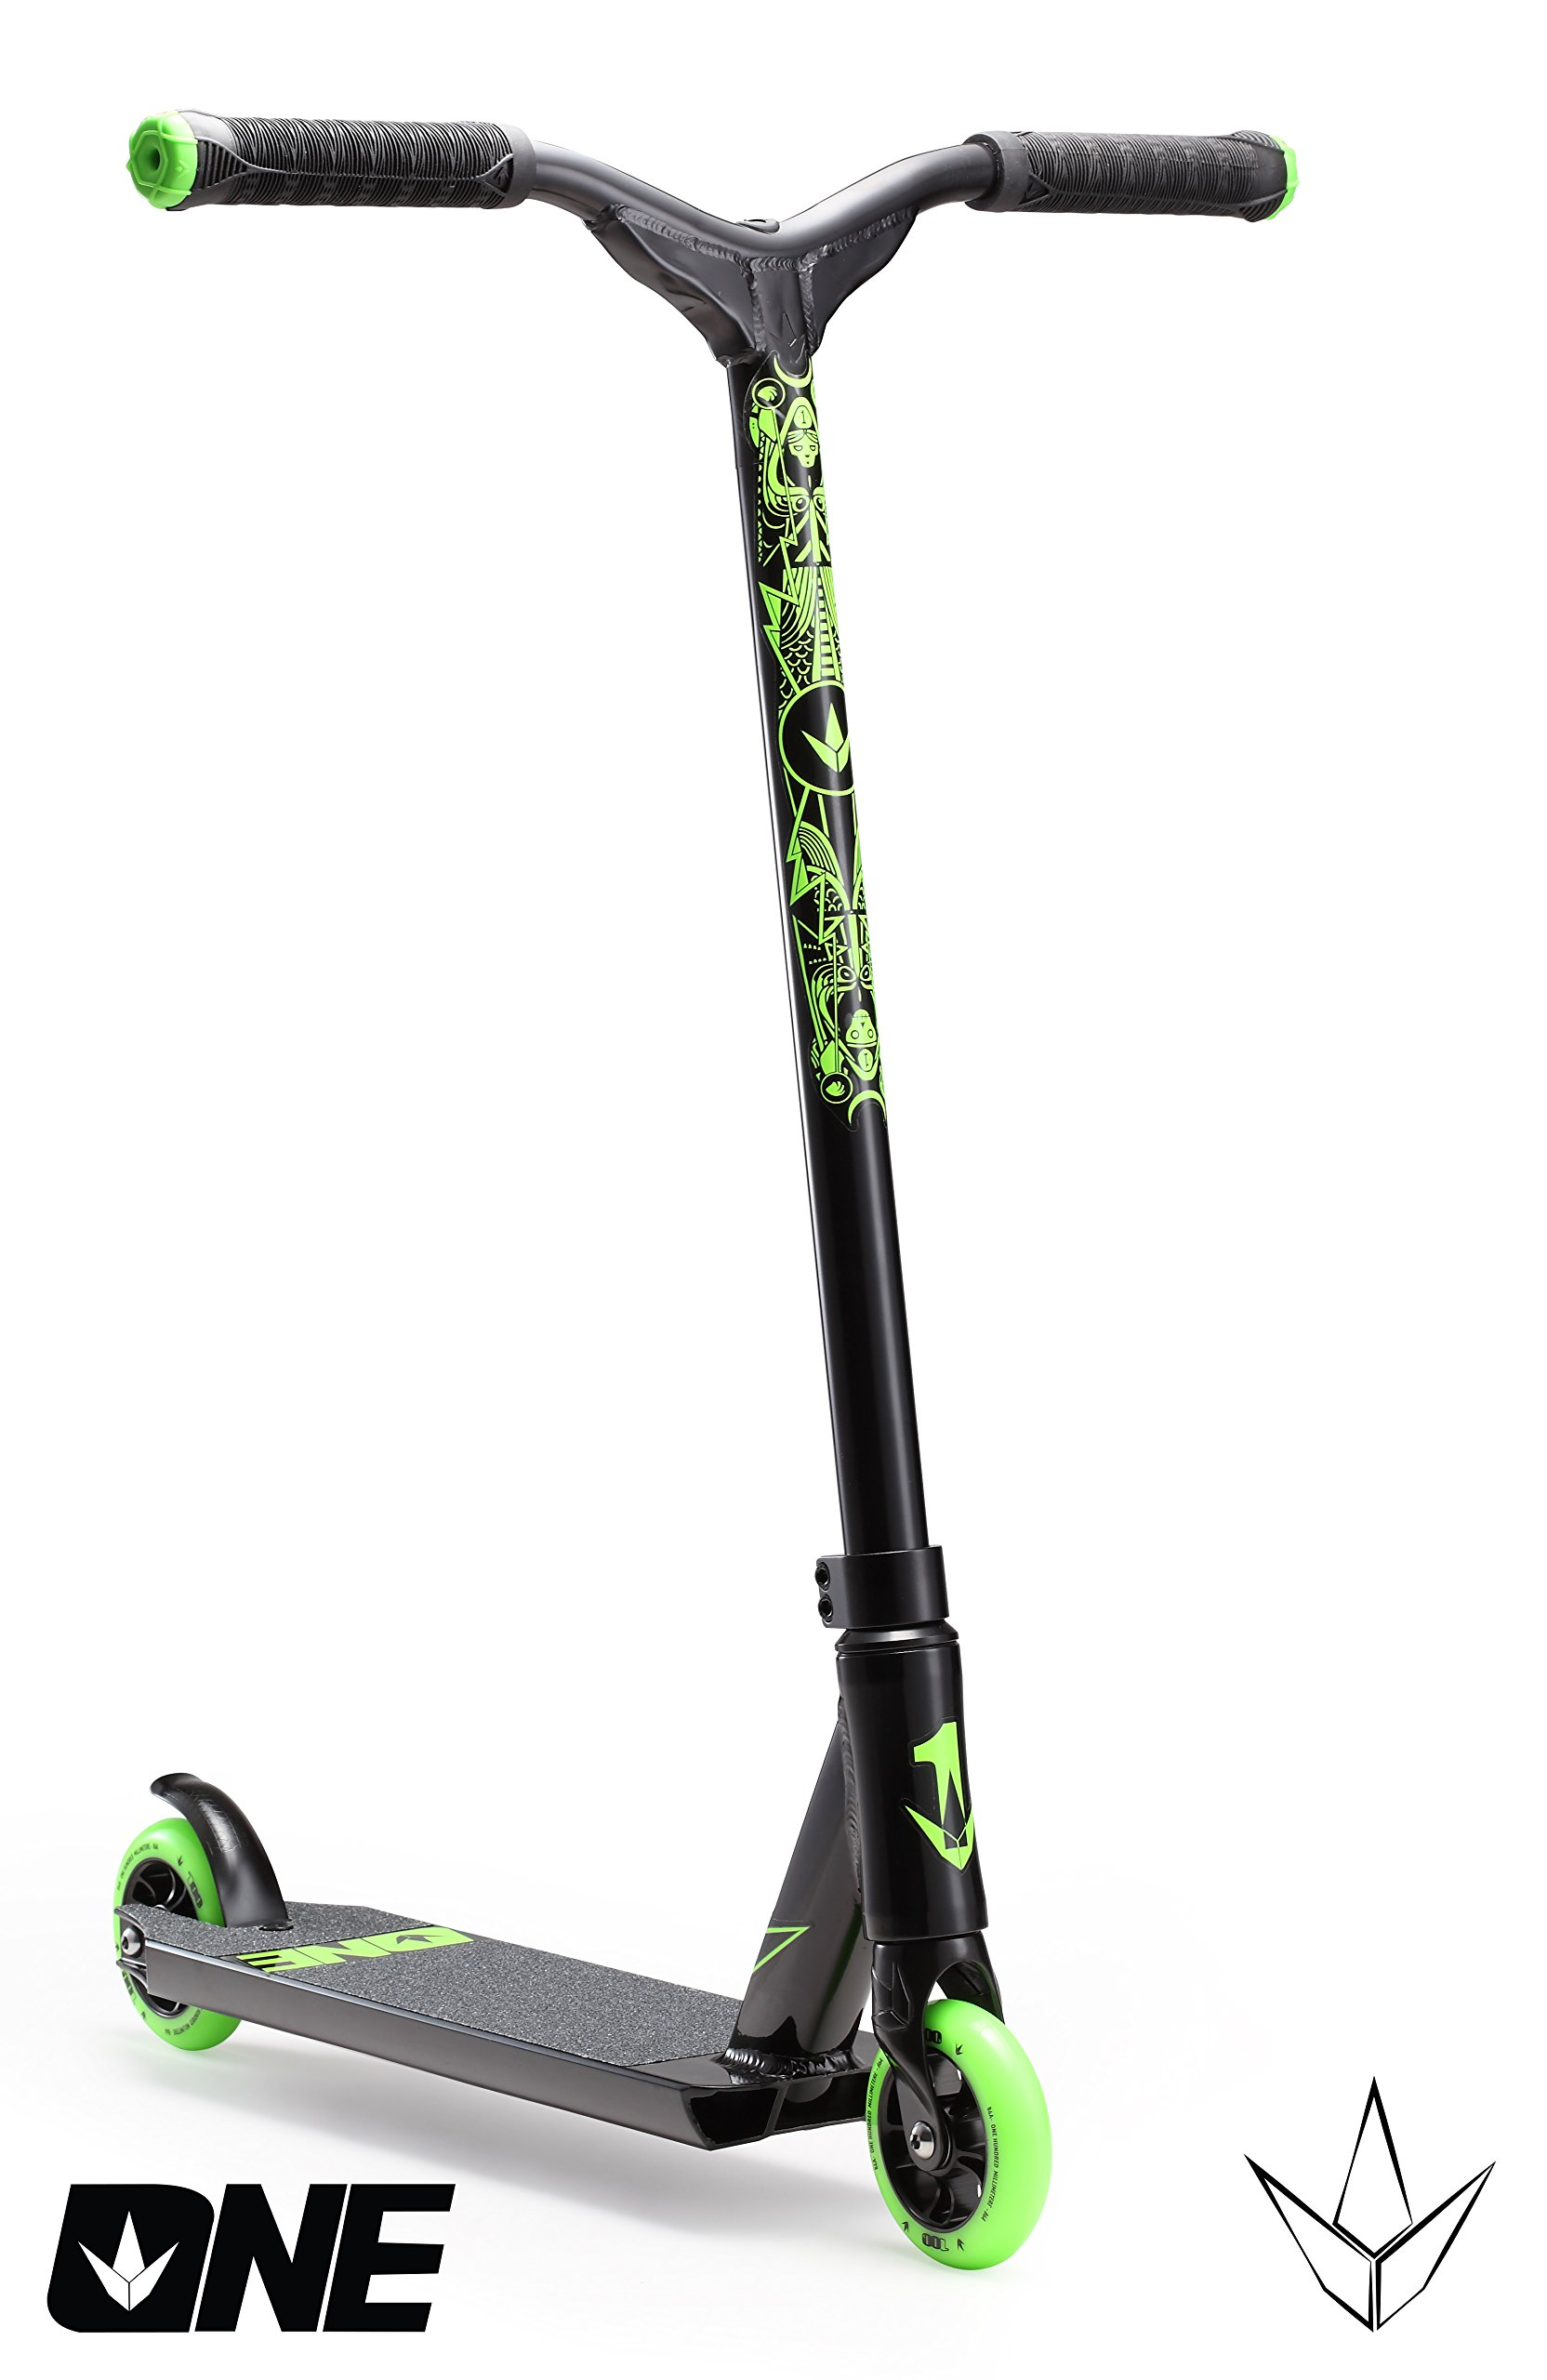 Envy One Scooter (Green) by Envy Scooters